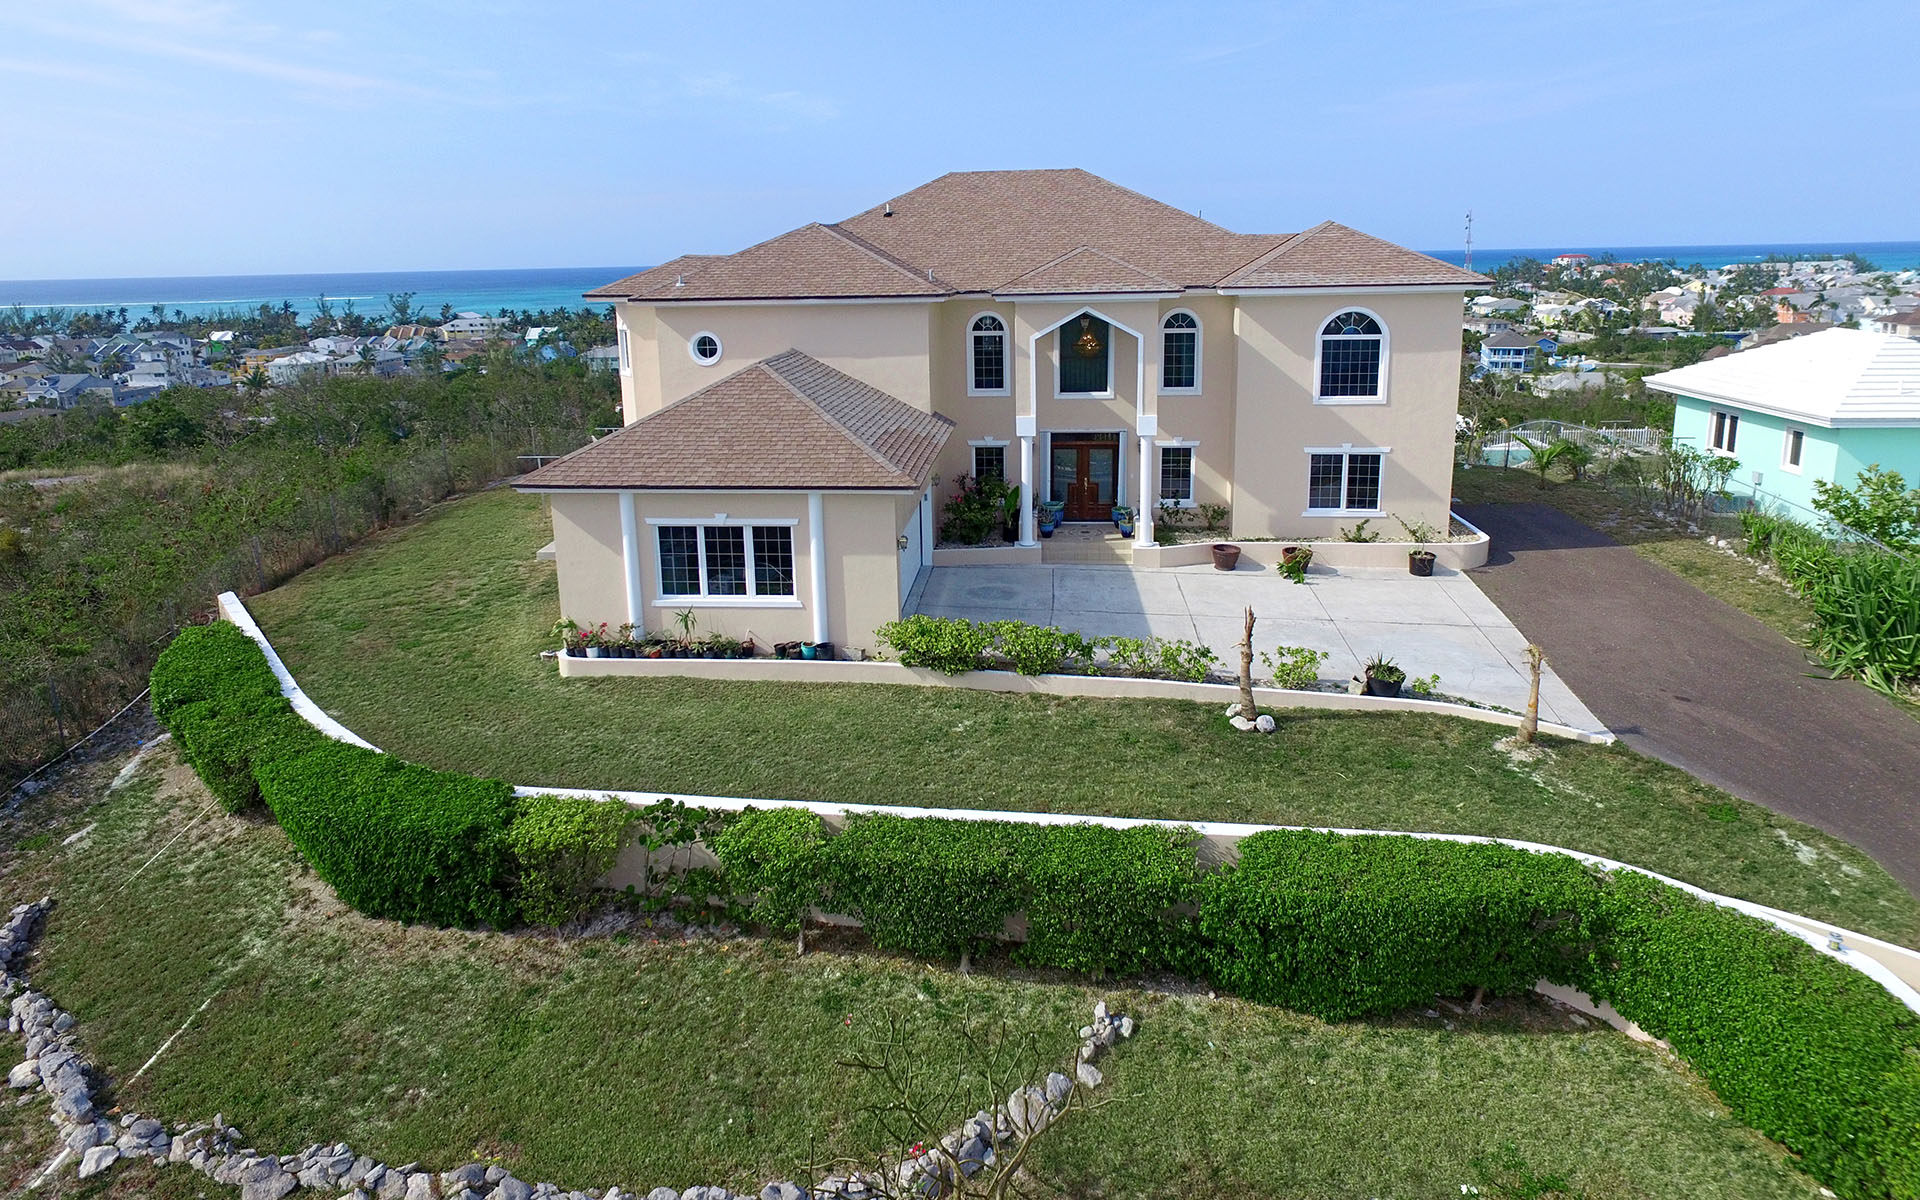 一戸建て のために 売買 アット Large Oceanview Hilltop Home in Westridge MLS 27832 Nassau New Providence And Vicinity